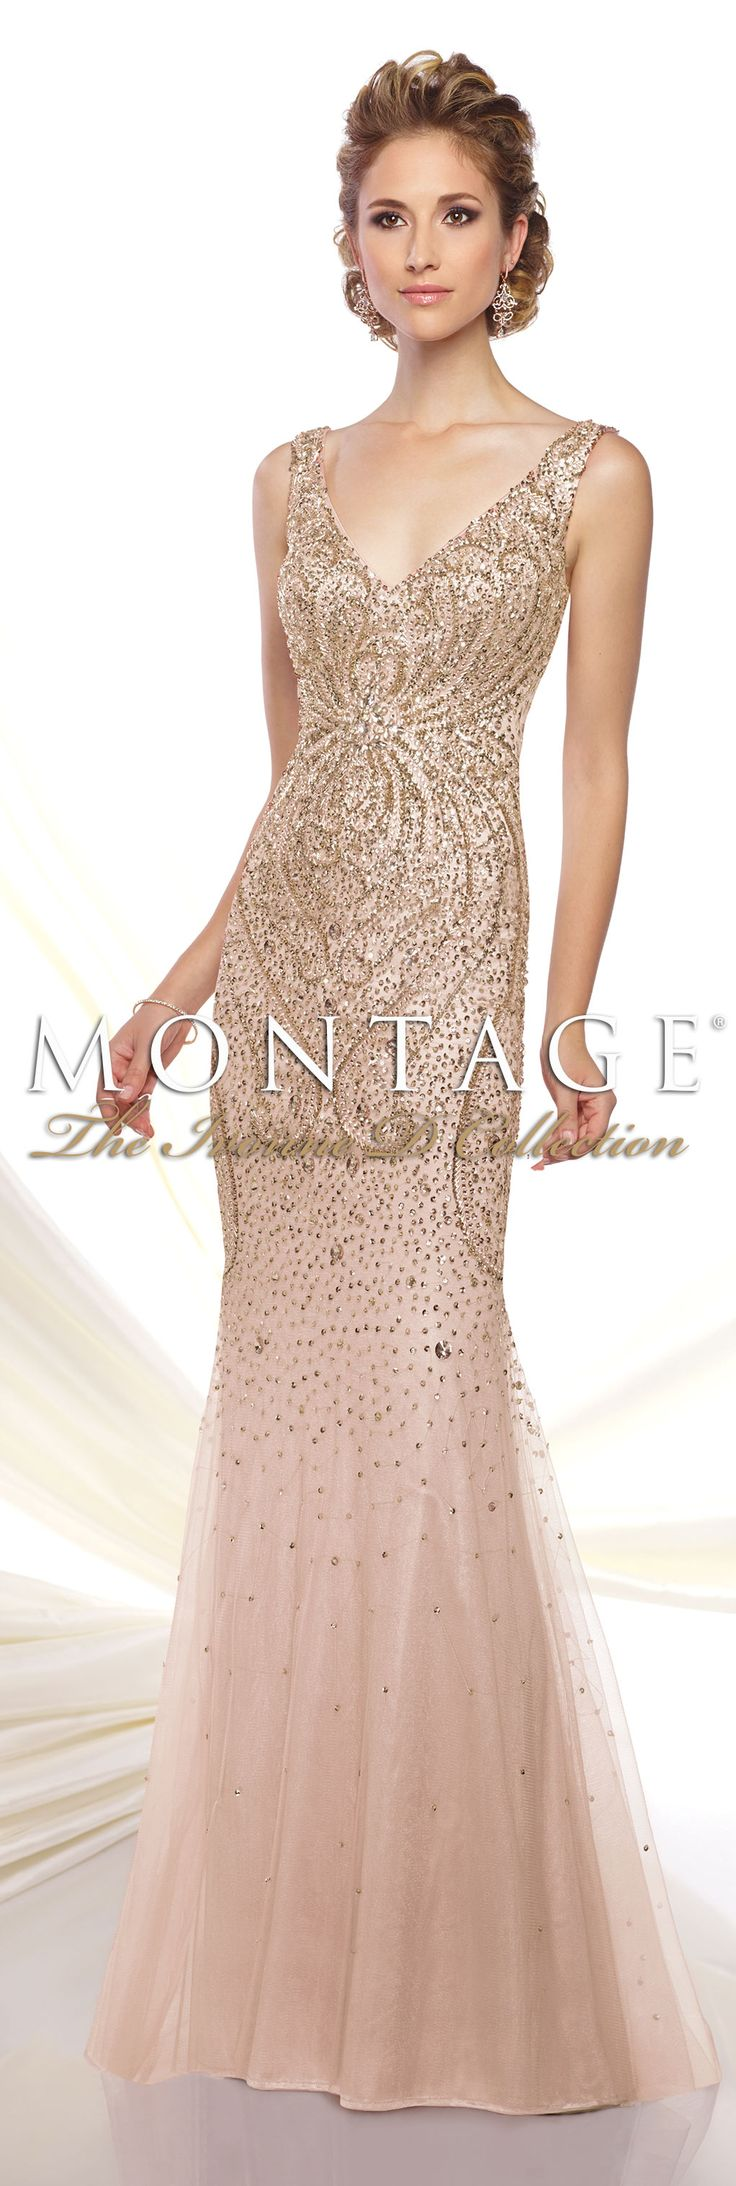 Best 10 montages ideas on pinterest montage photography for How much are mon cheri wedding dresses